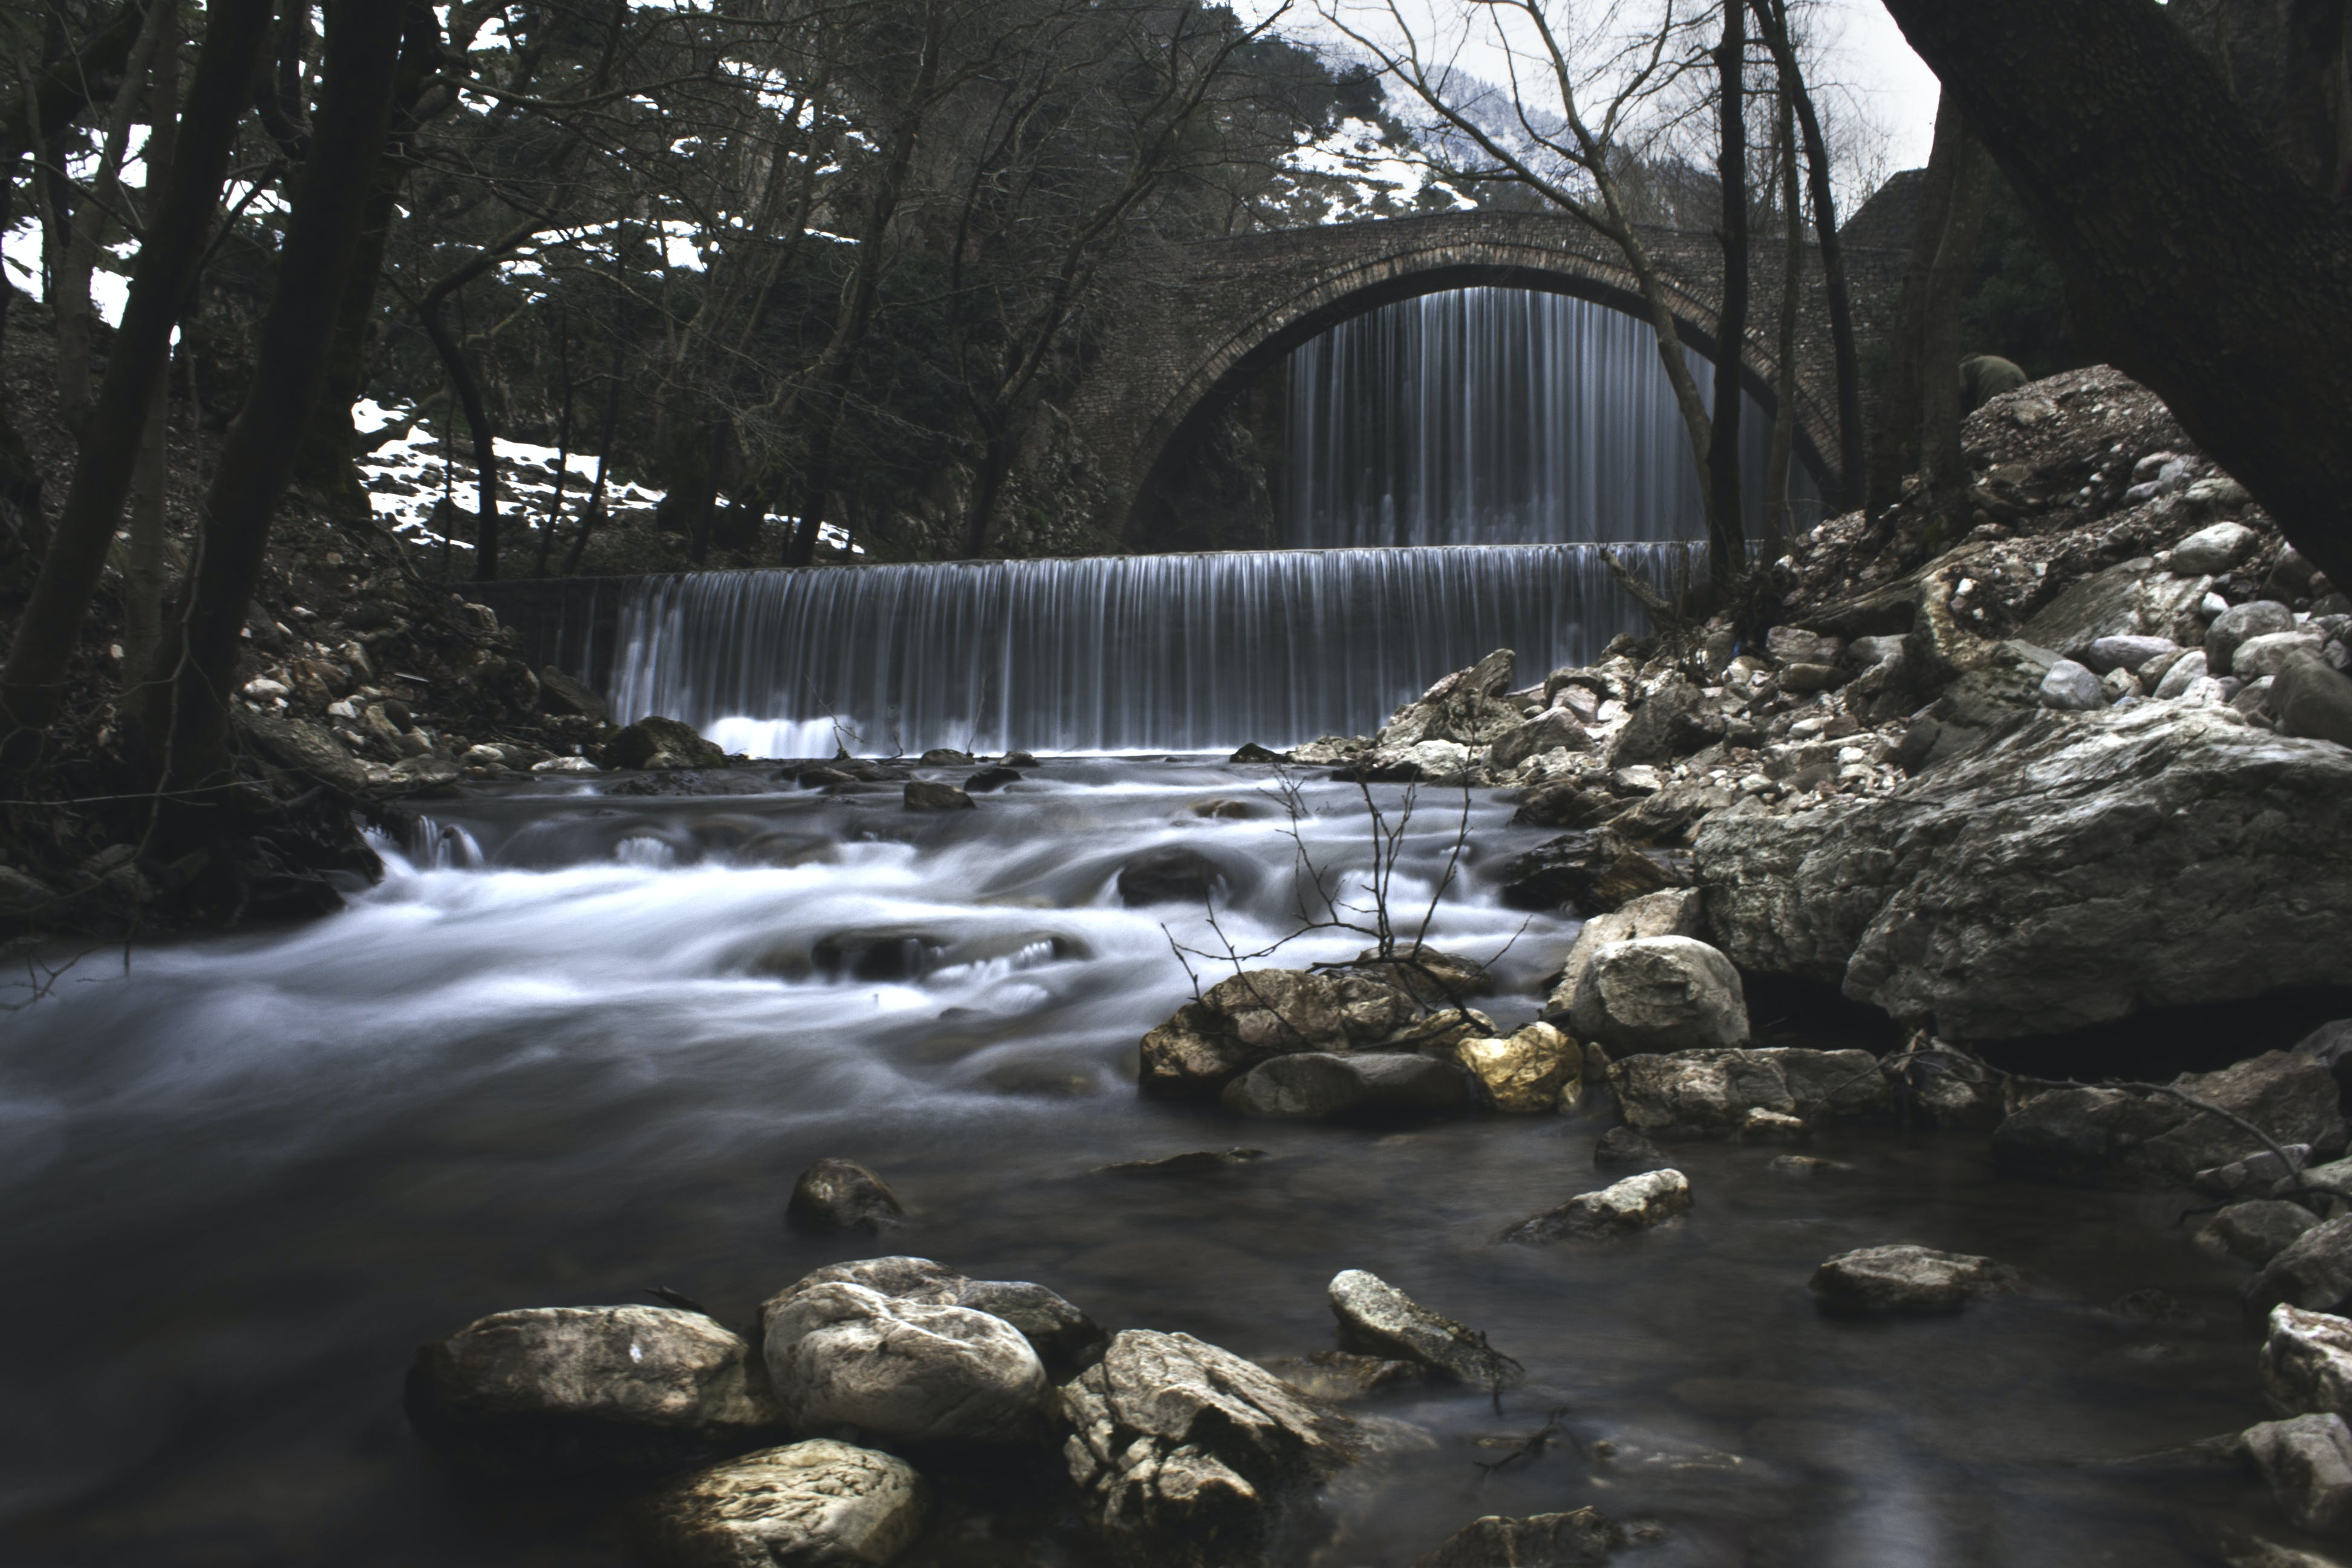 Time Lapse Photography of Waterfall